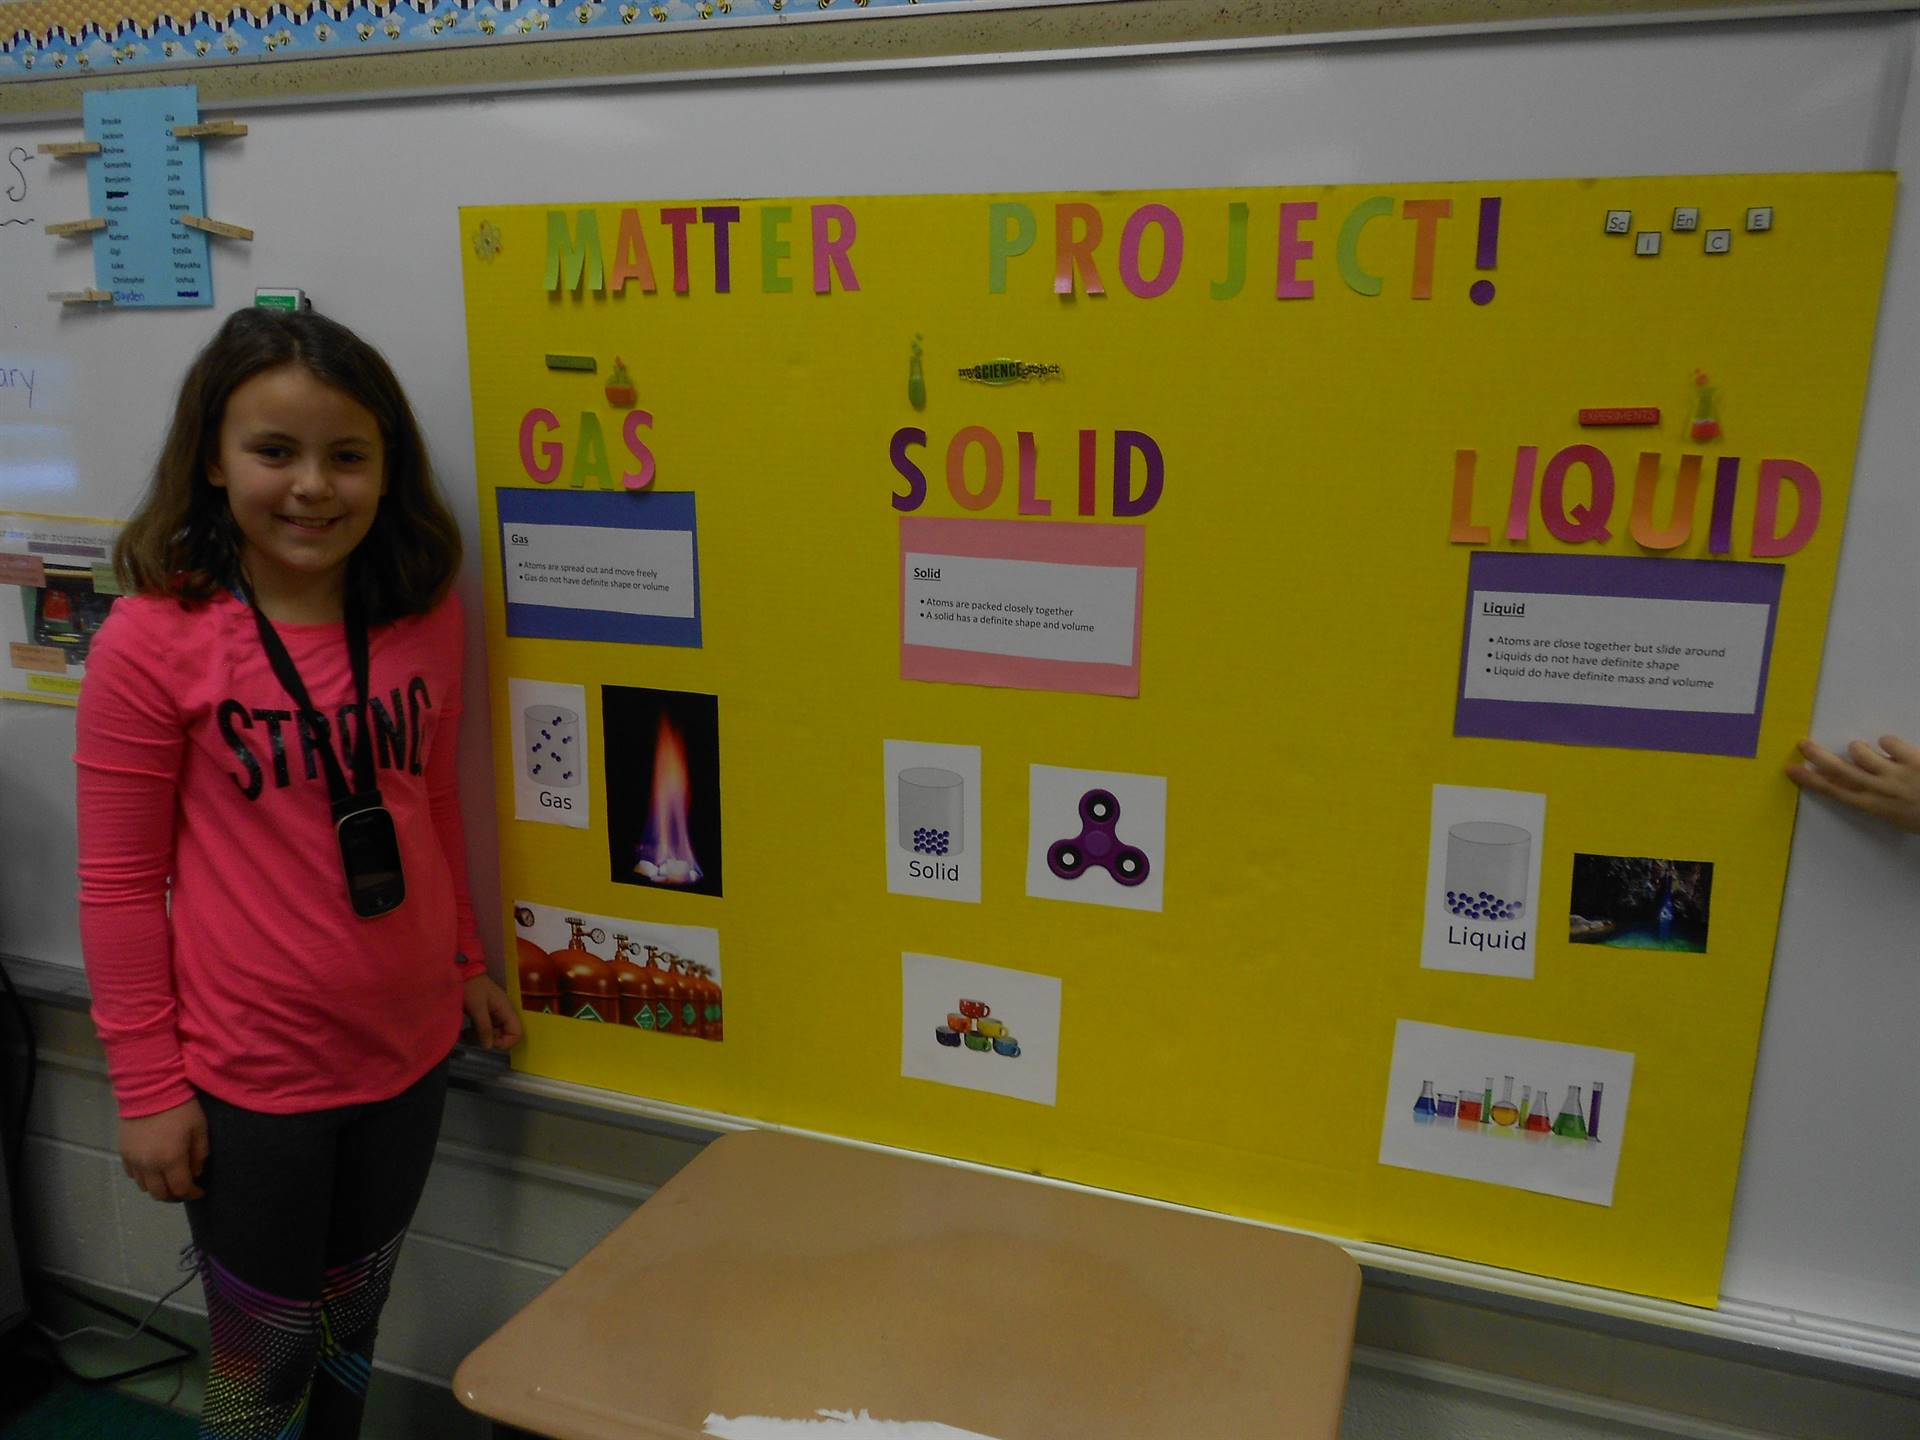 Matter projects